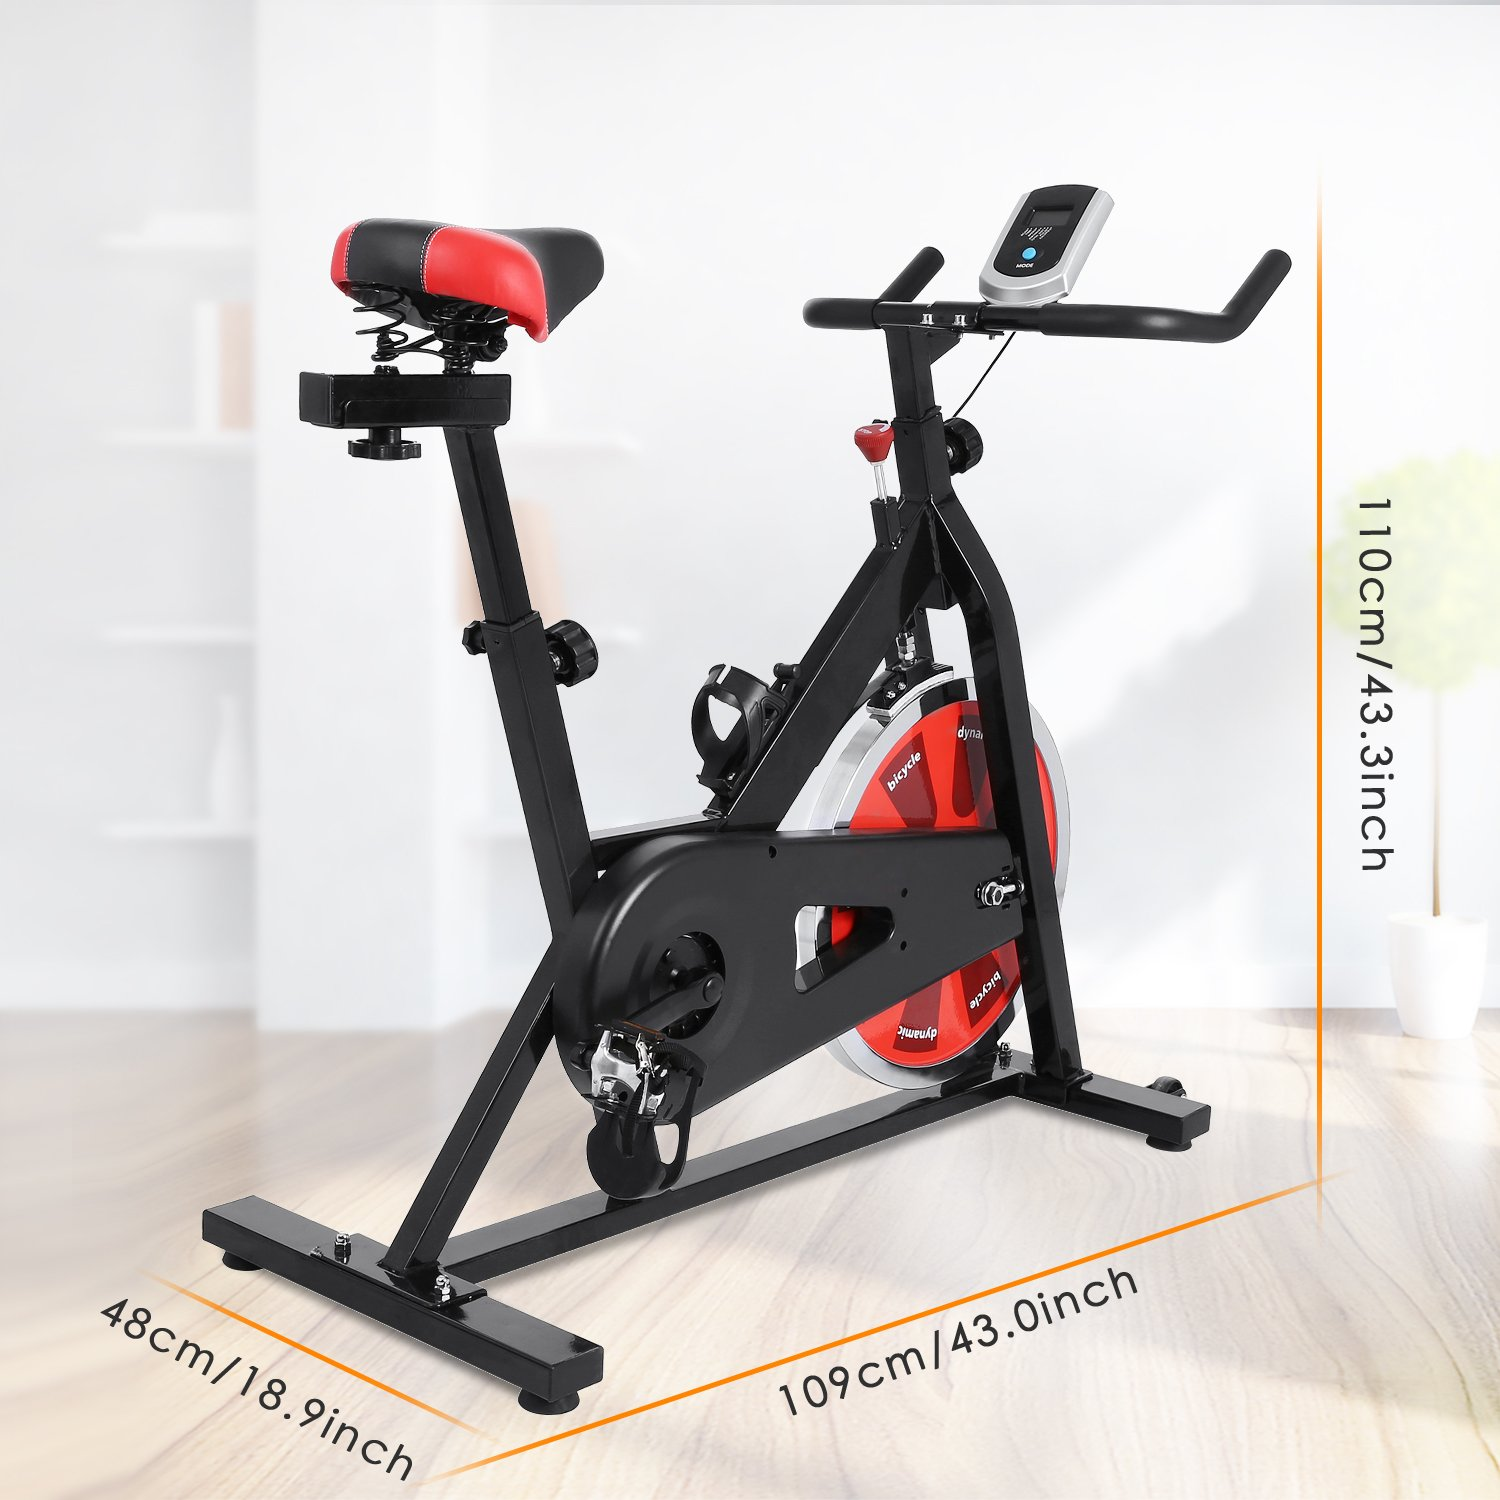 ANCHEER Stationary Bike, Indoor Cycling Exercise Bike 40 LBS Flywheel (Black_NO Pulse) by ANCHEER (Image #6)